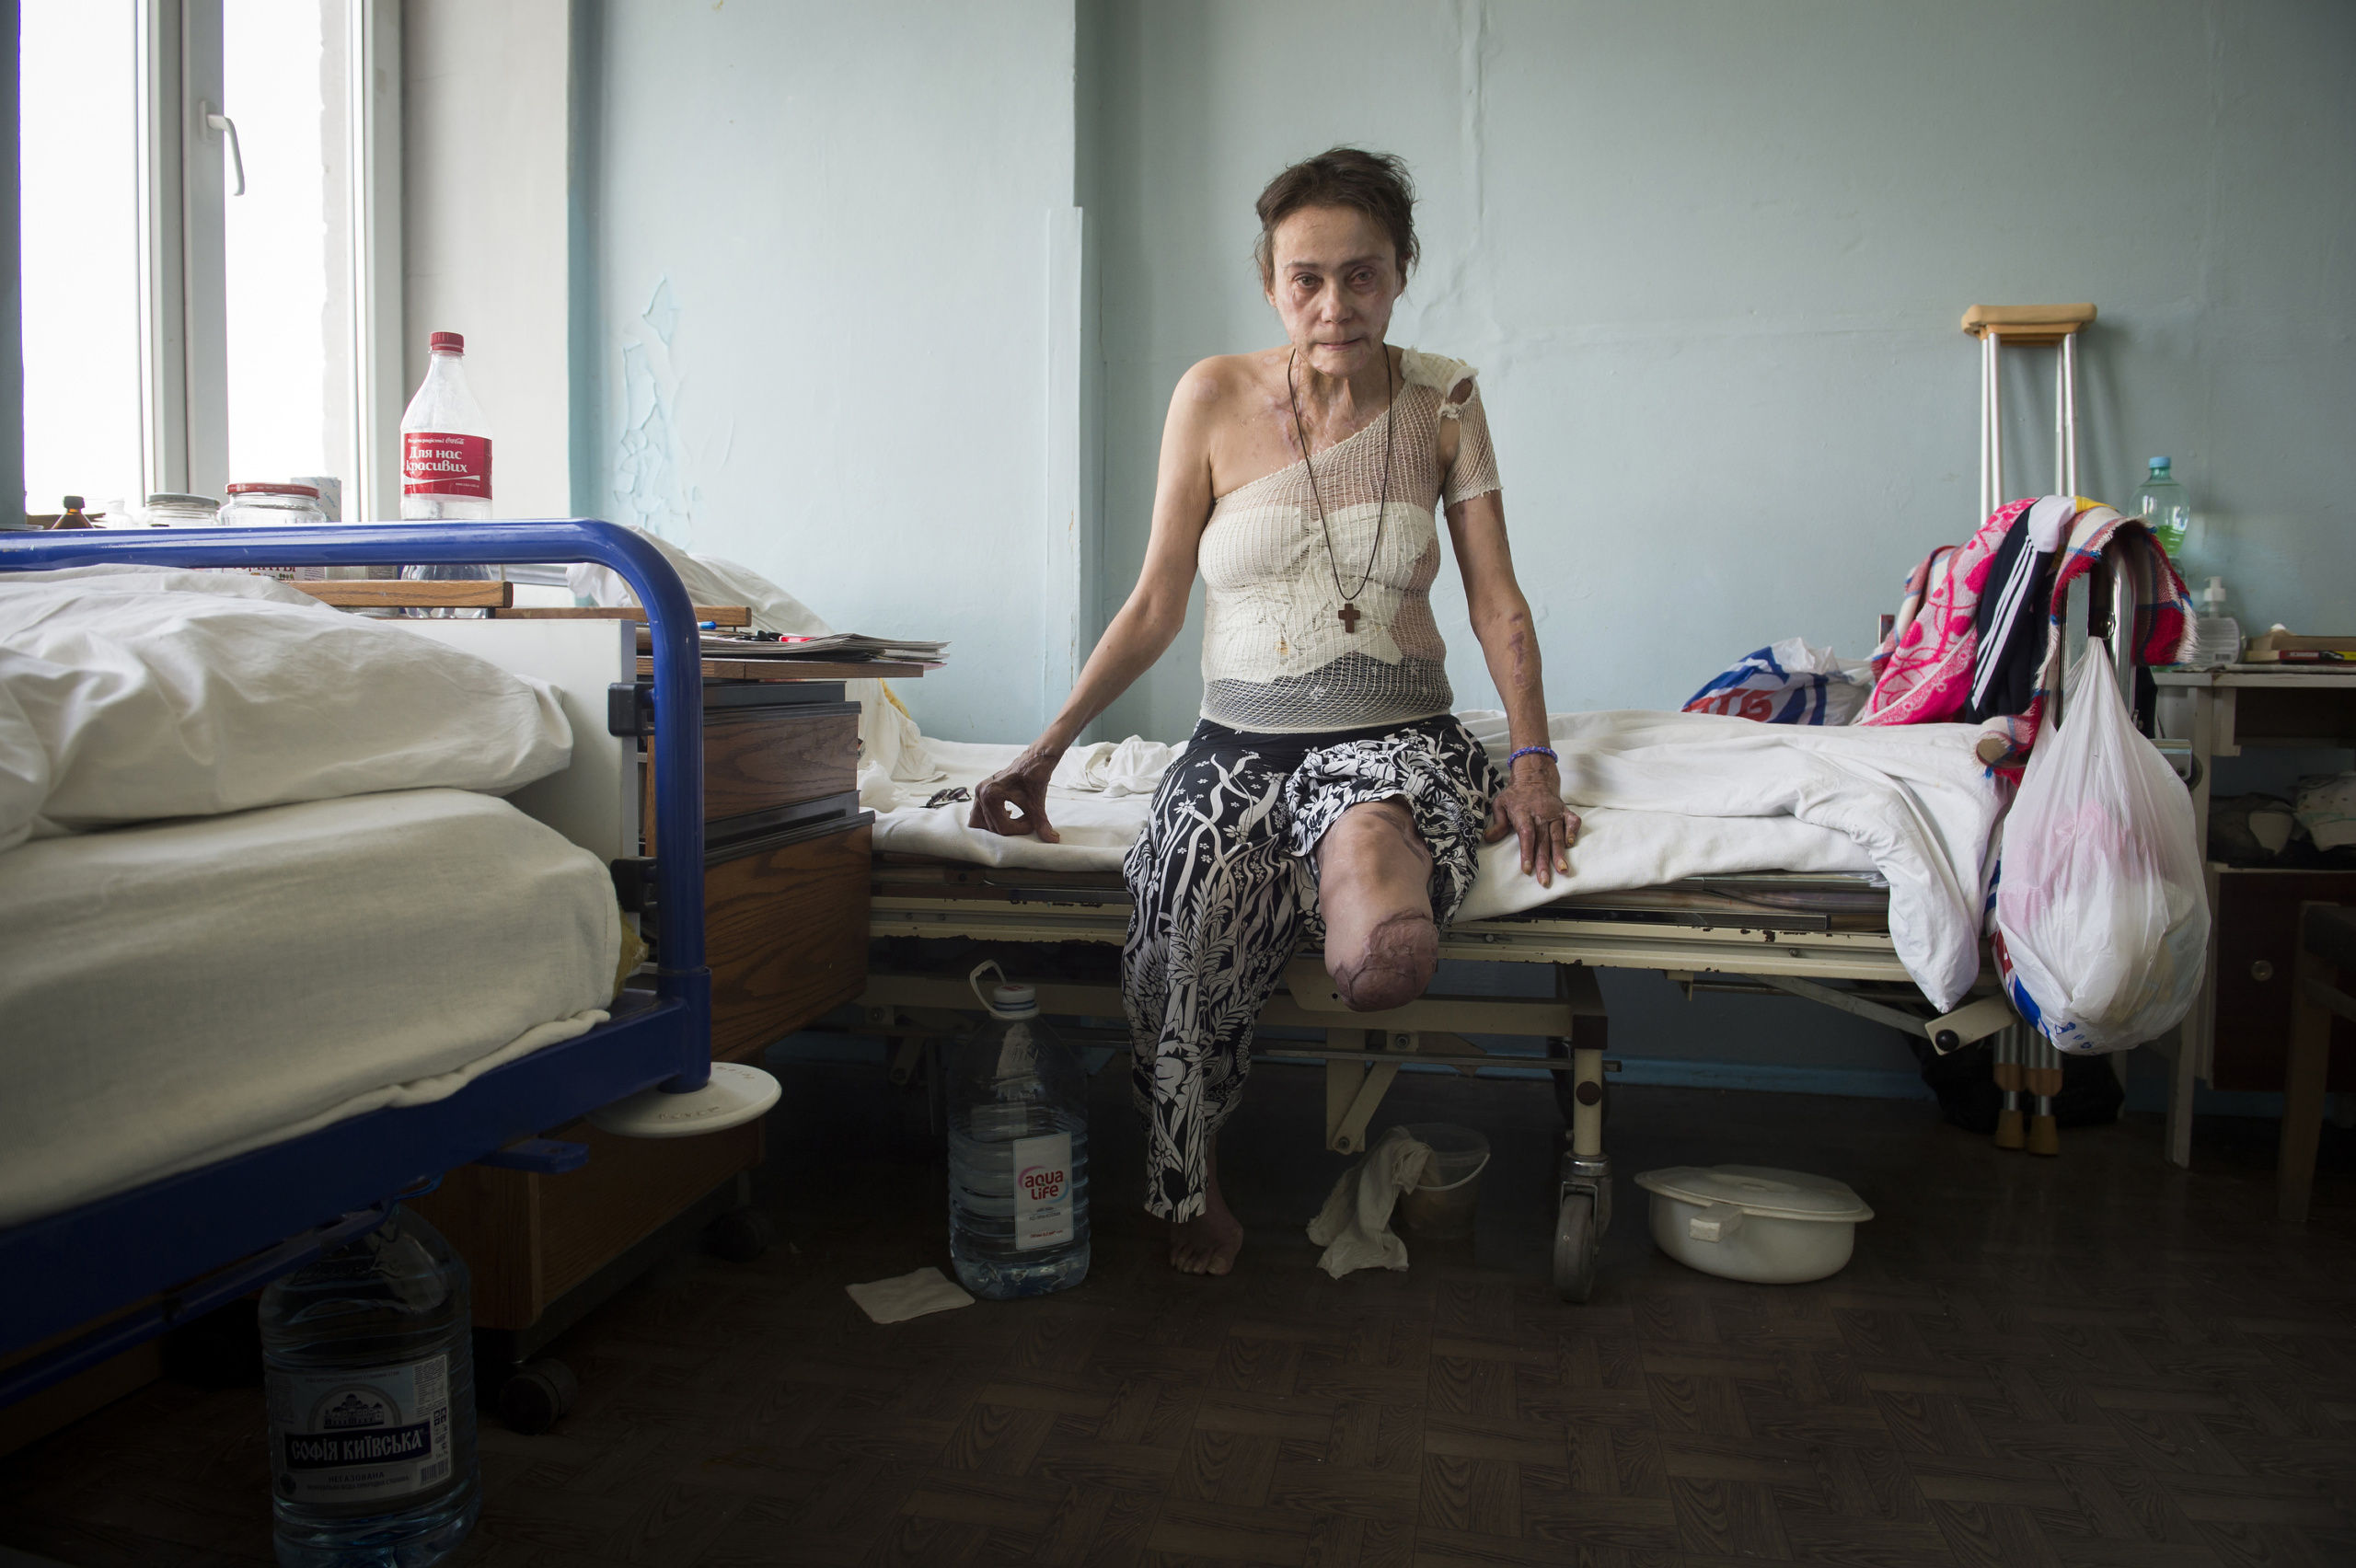 Kiev Hospital N°2. Iryna Borisovna. 53 years old was injured by bomb  the 14 th Feburary on Shasta city Lugansk region. The fight between pro-Ukrainian troops and pro-Russian separatists is continuing in the Donbas region of eastern Ukraine despite the recent Minsk ceasefire agreements.